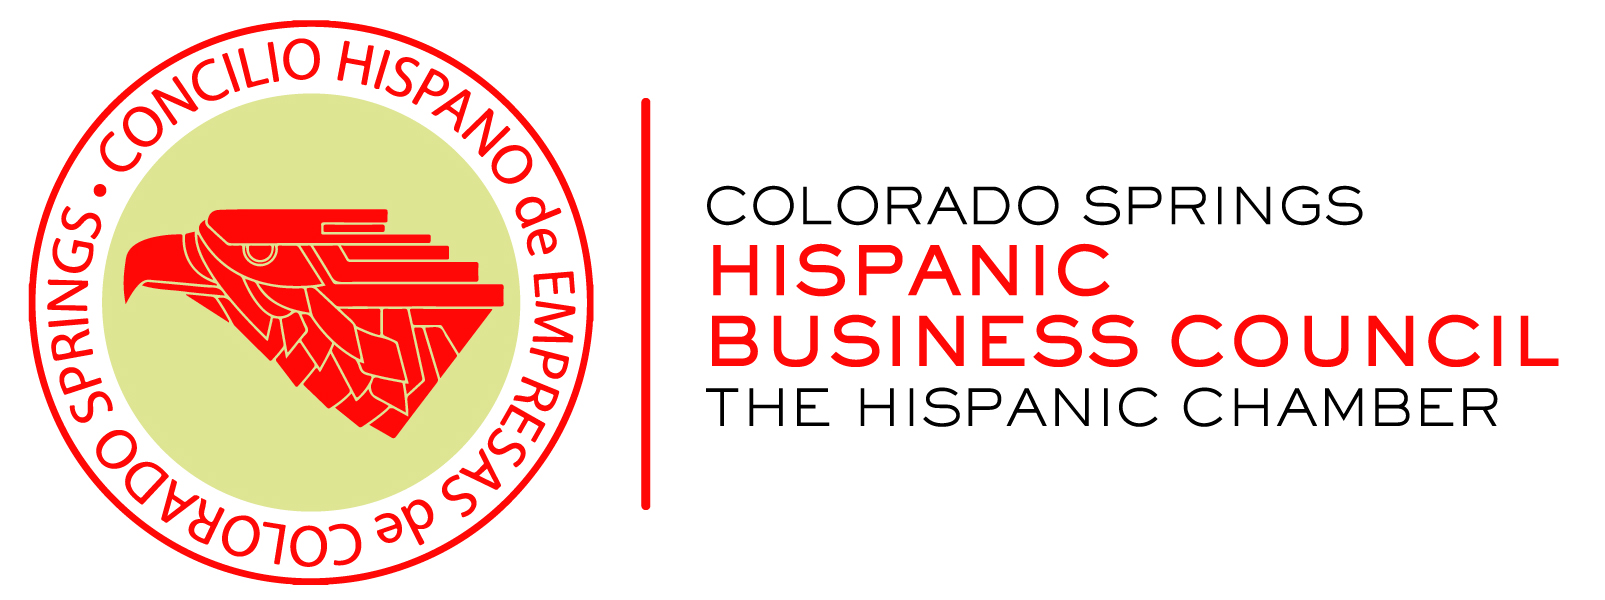 Colorado Springs Hispanic Business Council Logo